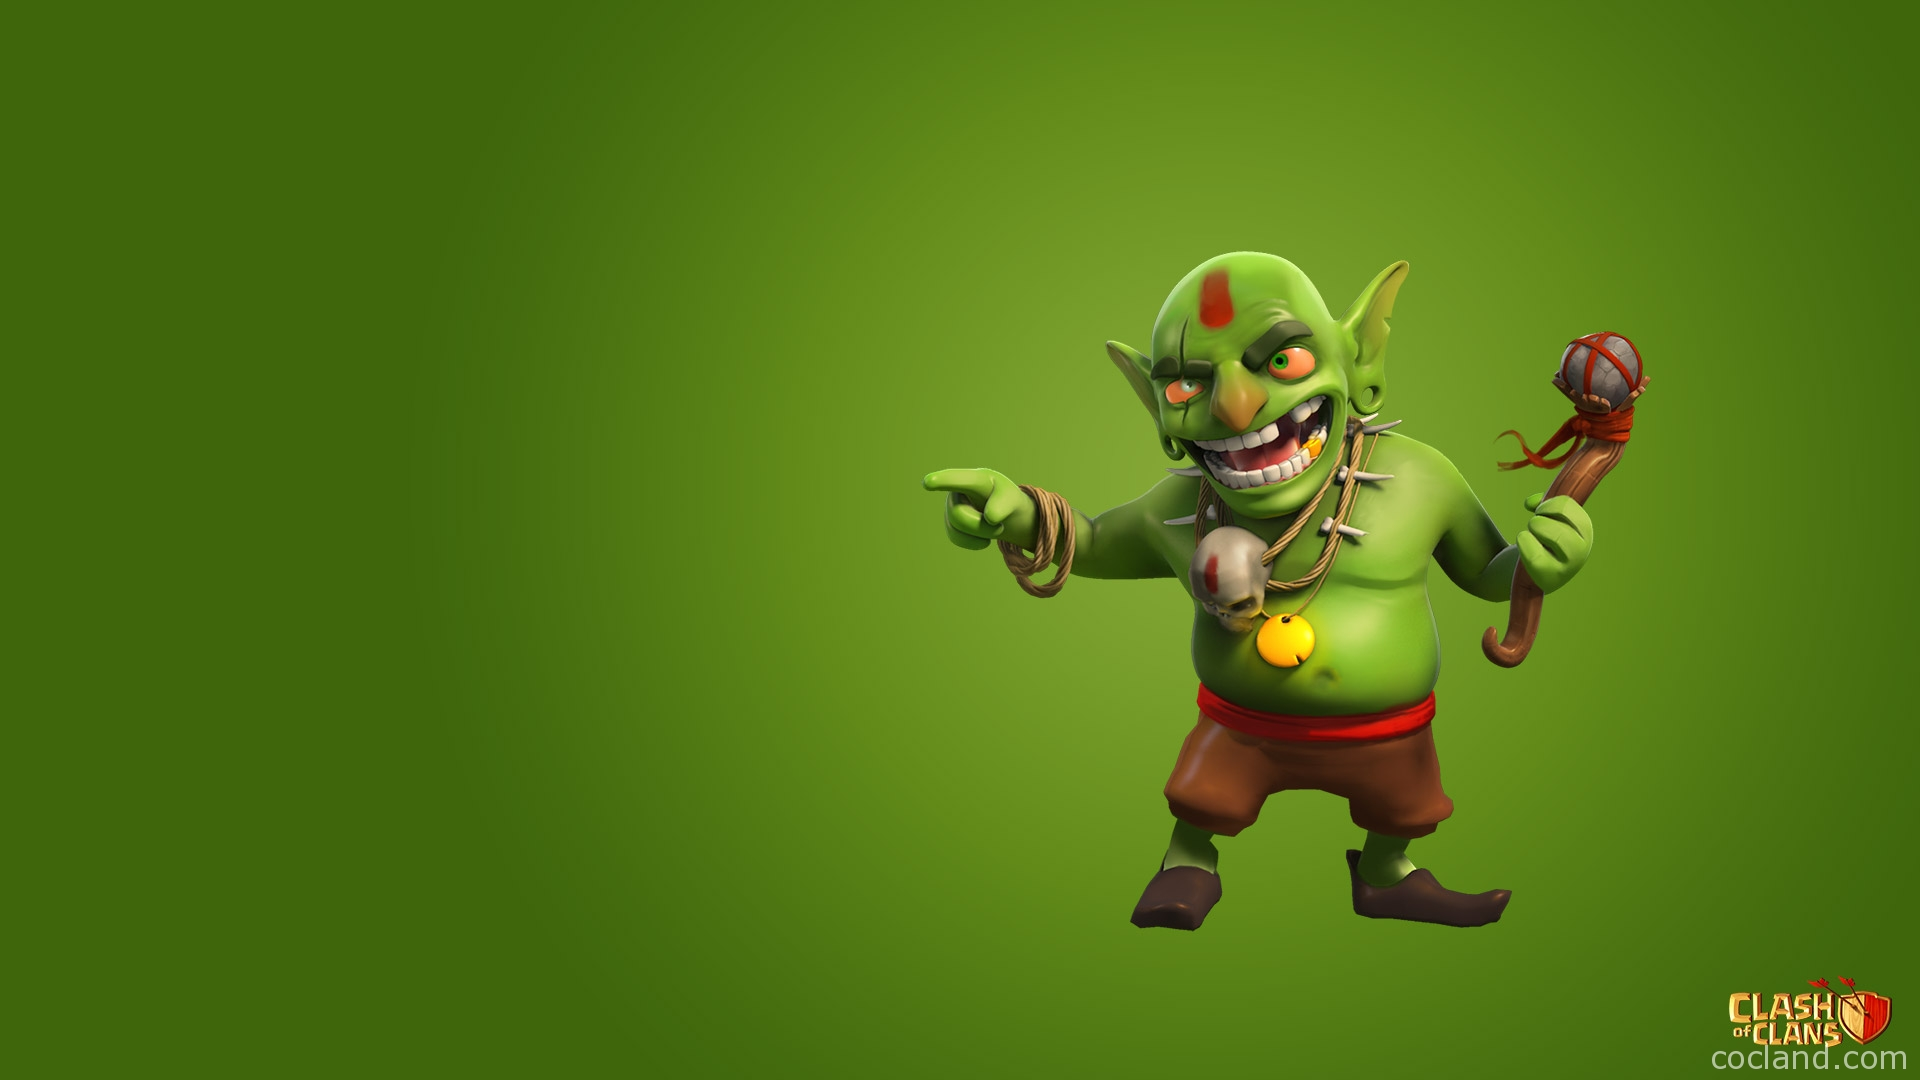 Clash of Clans Goblin Wallpaper